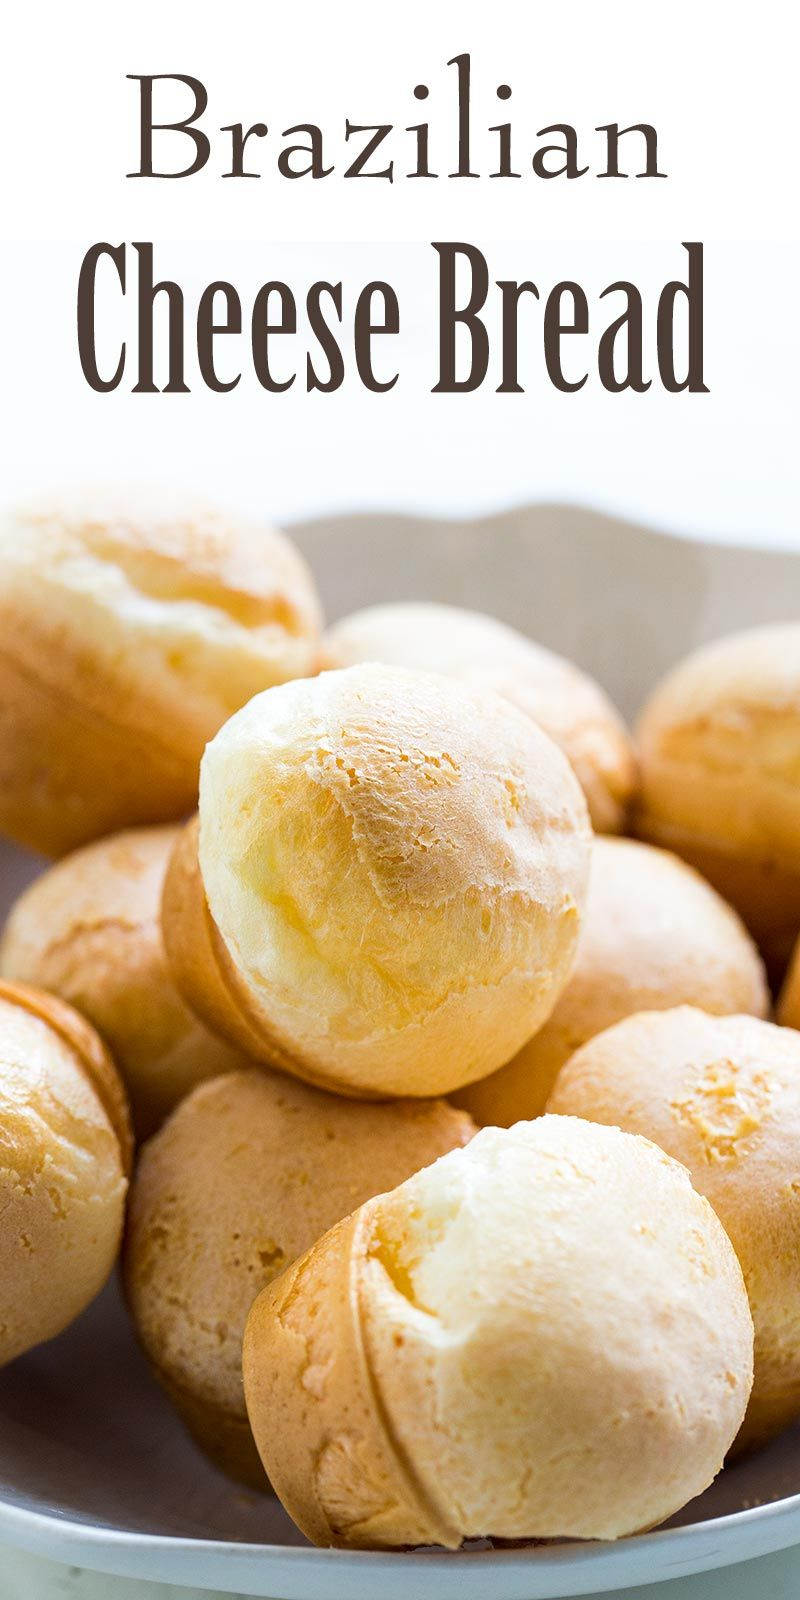 Brazilian Cheese Bread is EASY to make! Puffy, chewy, cheesy. All you need is tapioca flour, milk,